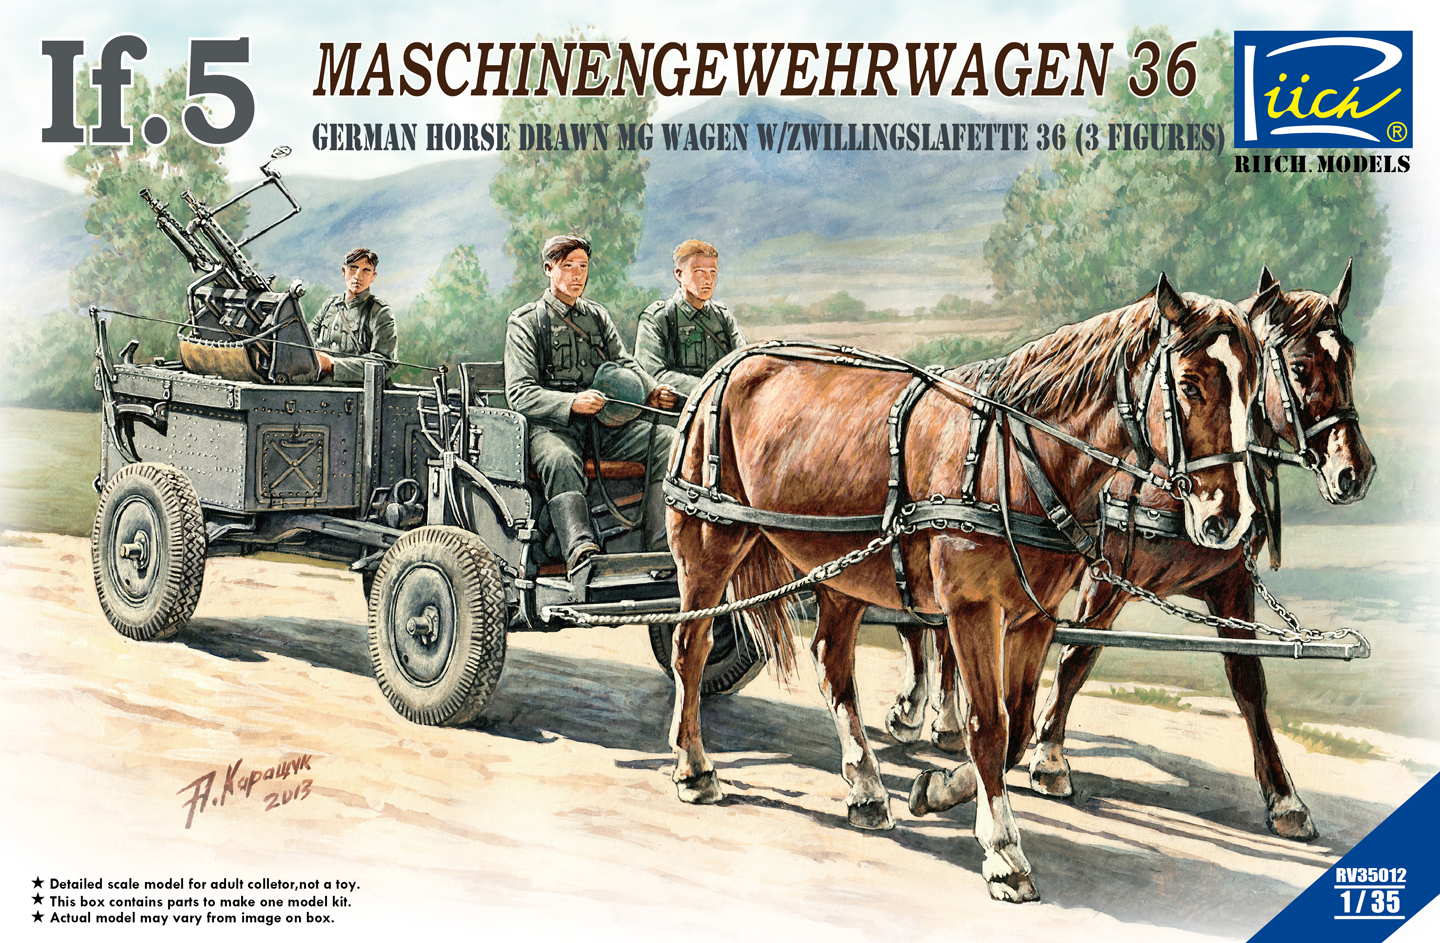 Riich 1/35 WWII German IF-5 Horse Drawn MG Wagon with Zwillingslafette 36 (two horese & three figures)